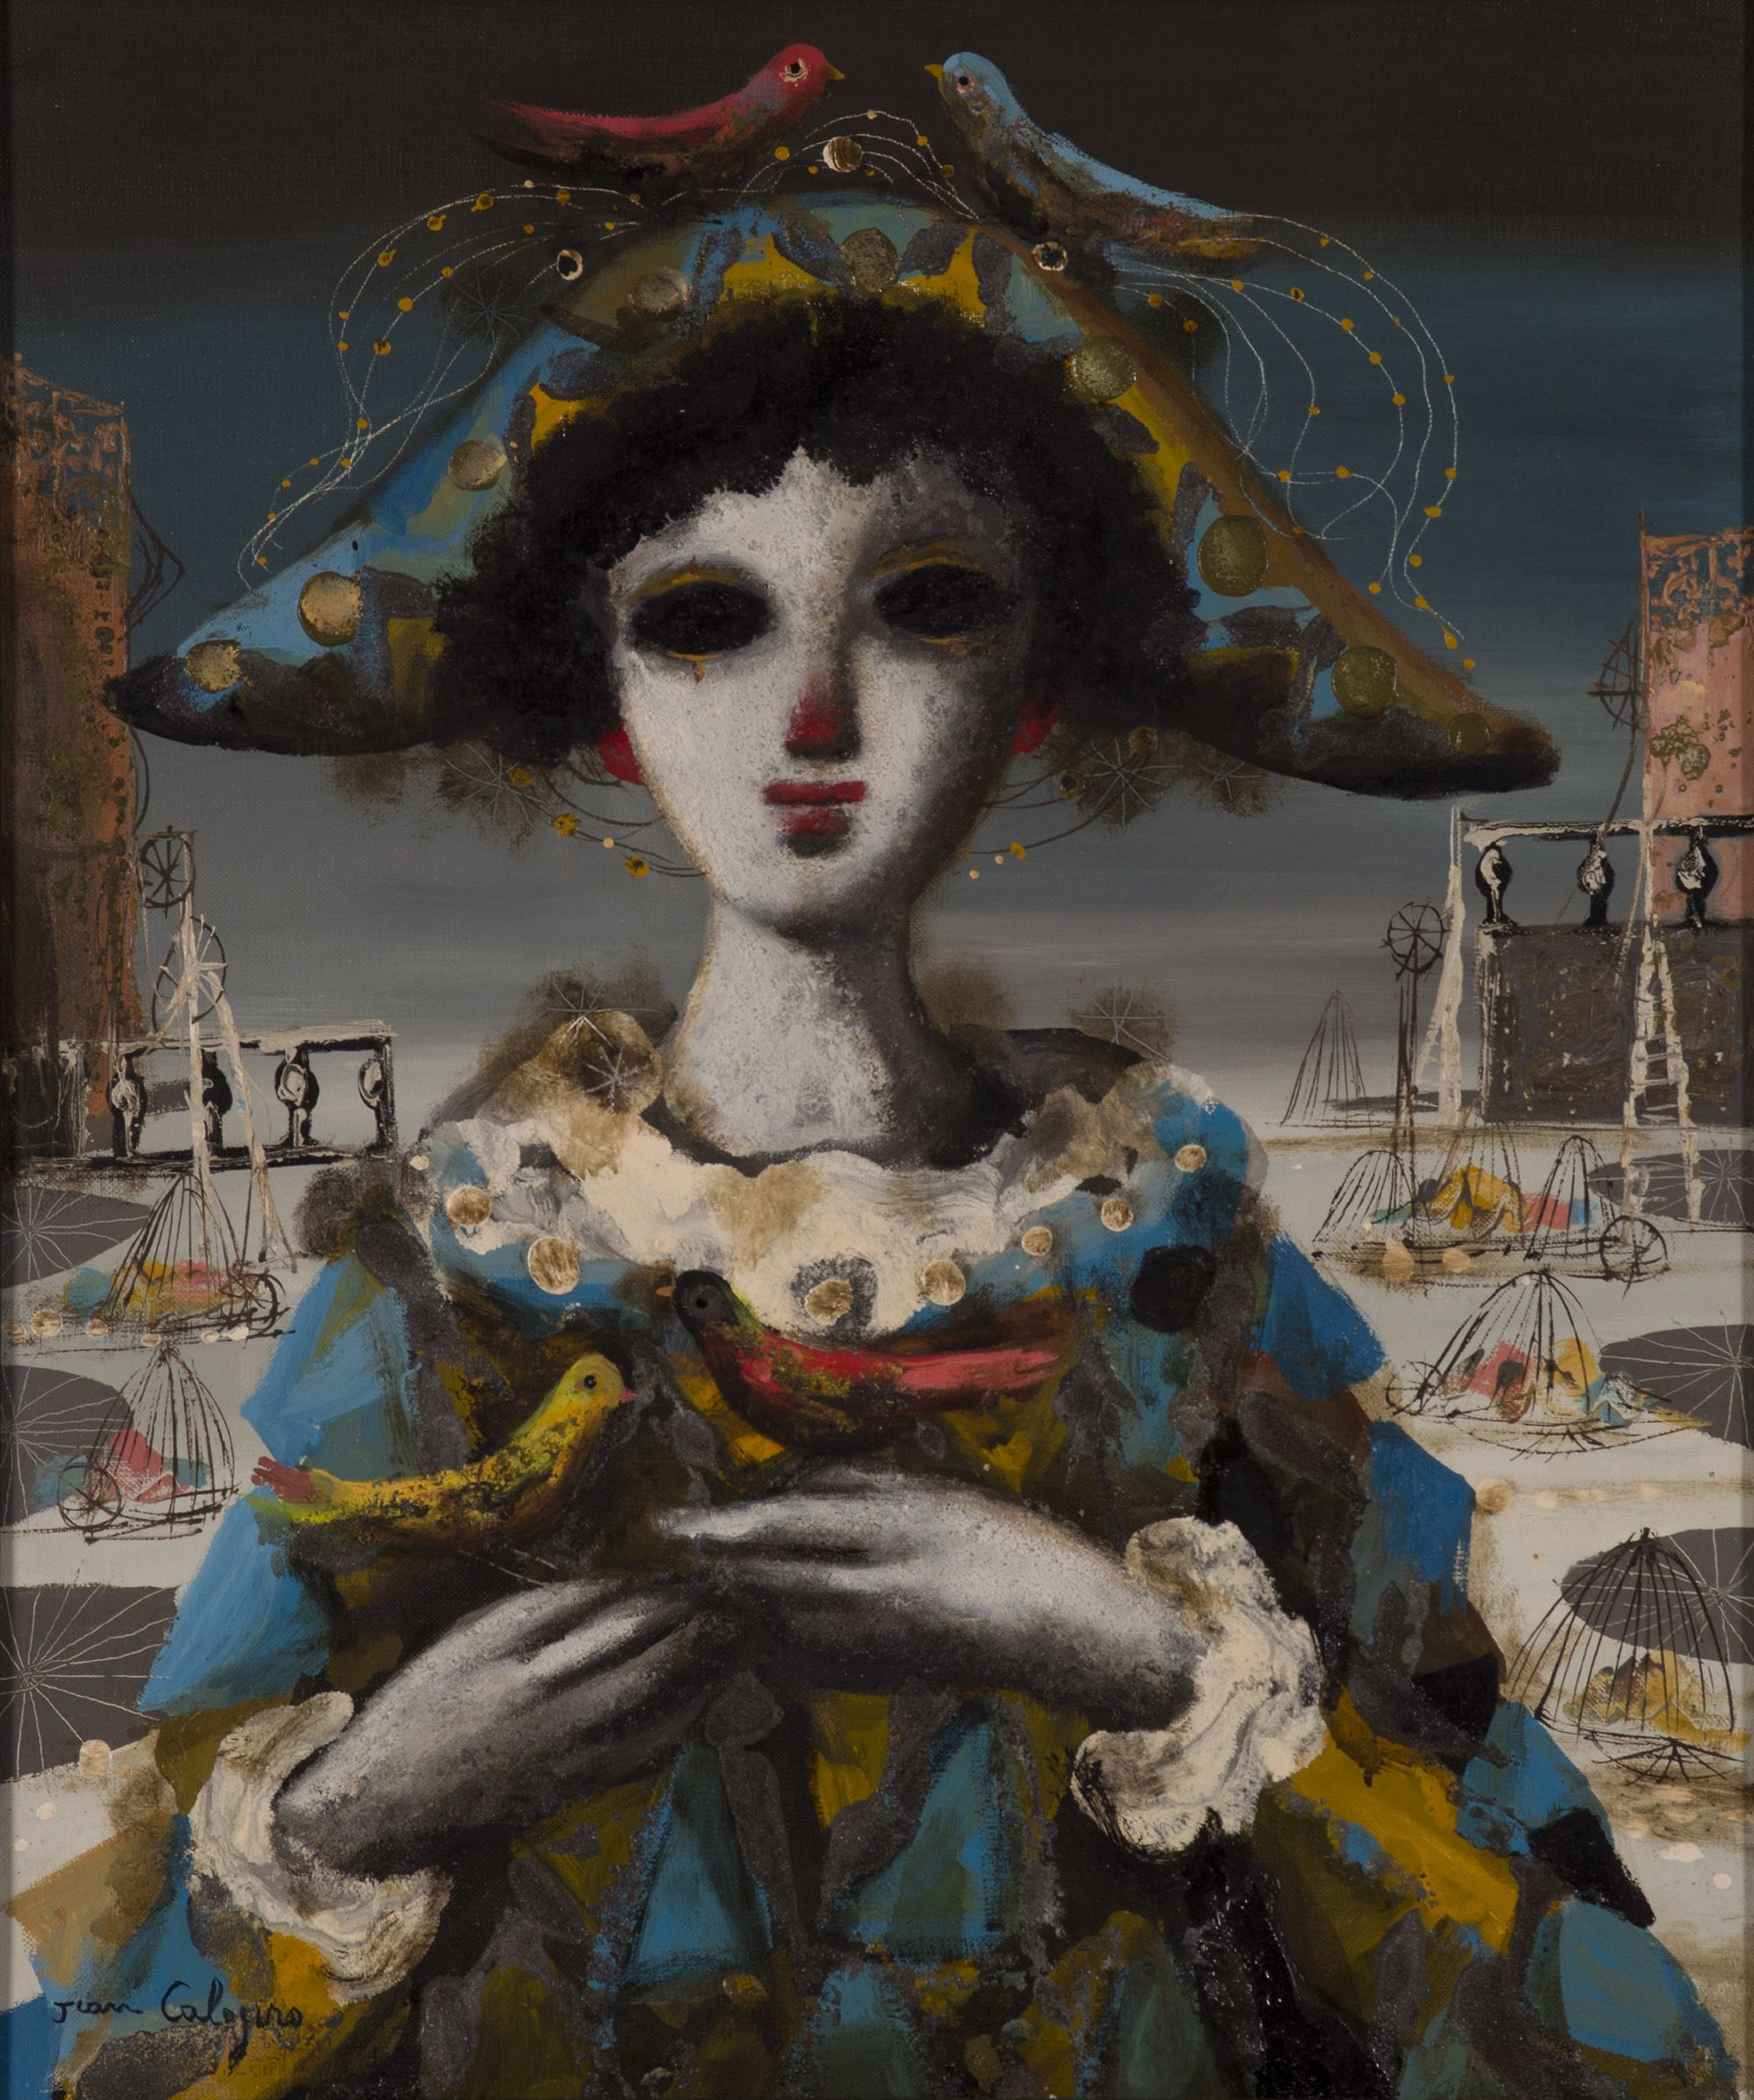 Jean Calogero, clown with canary